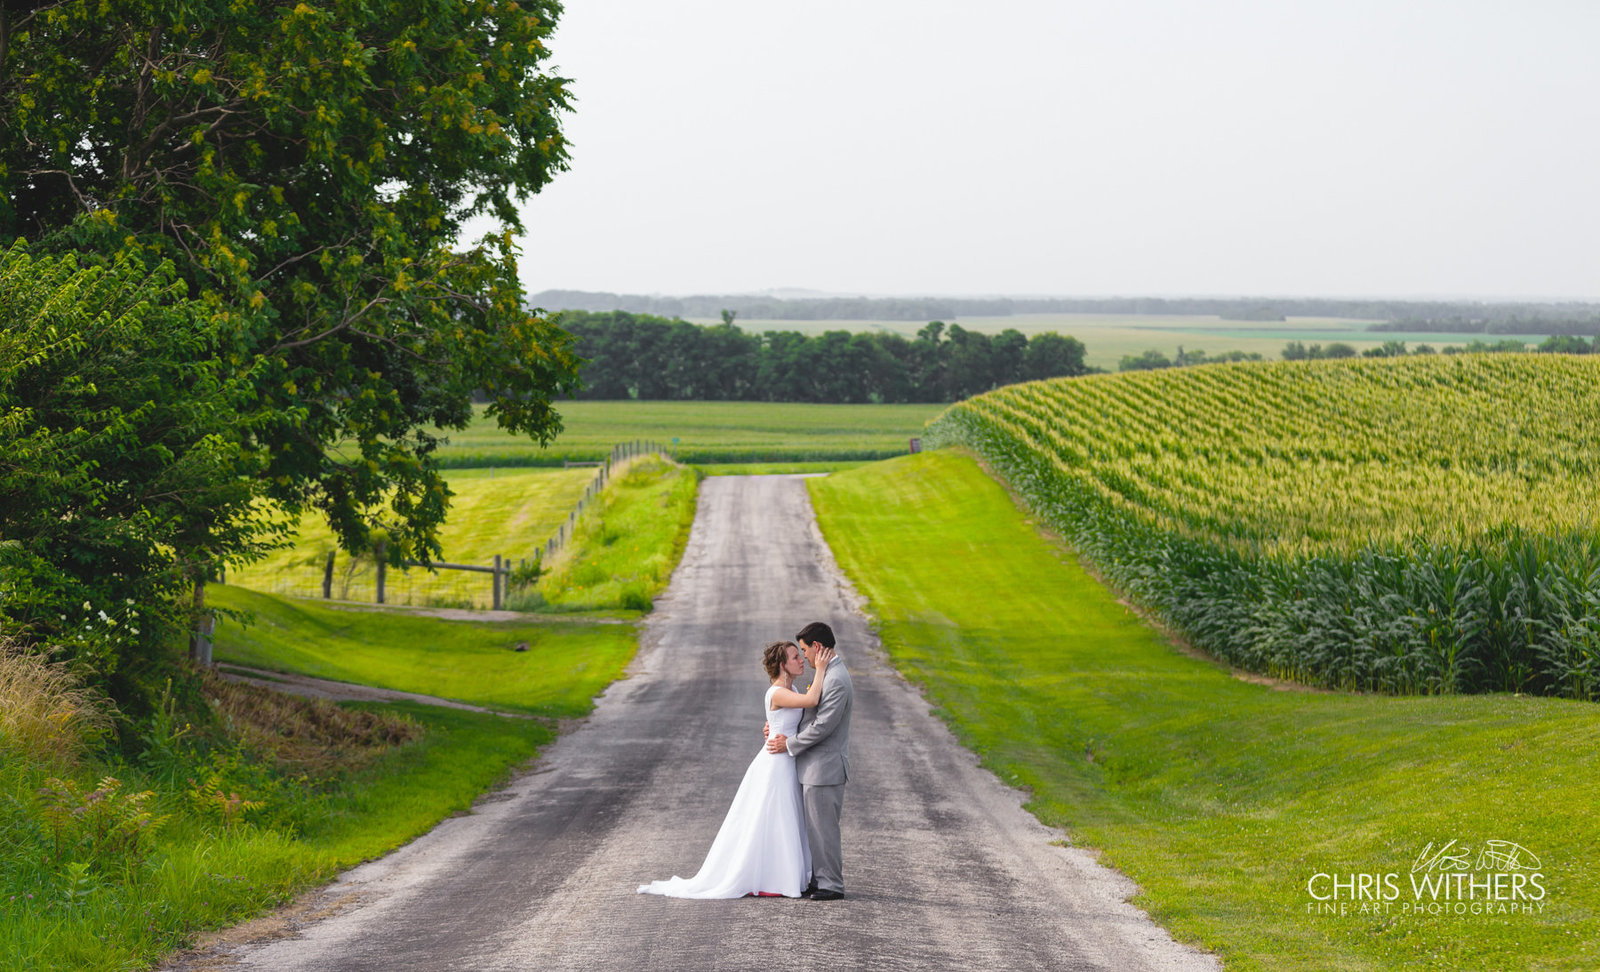 Springfield Illinois Wedding Photographer - Chris Withers Photography (35 of 159)